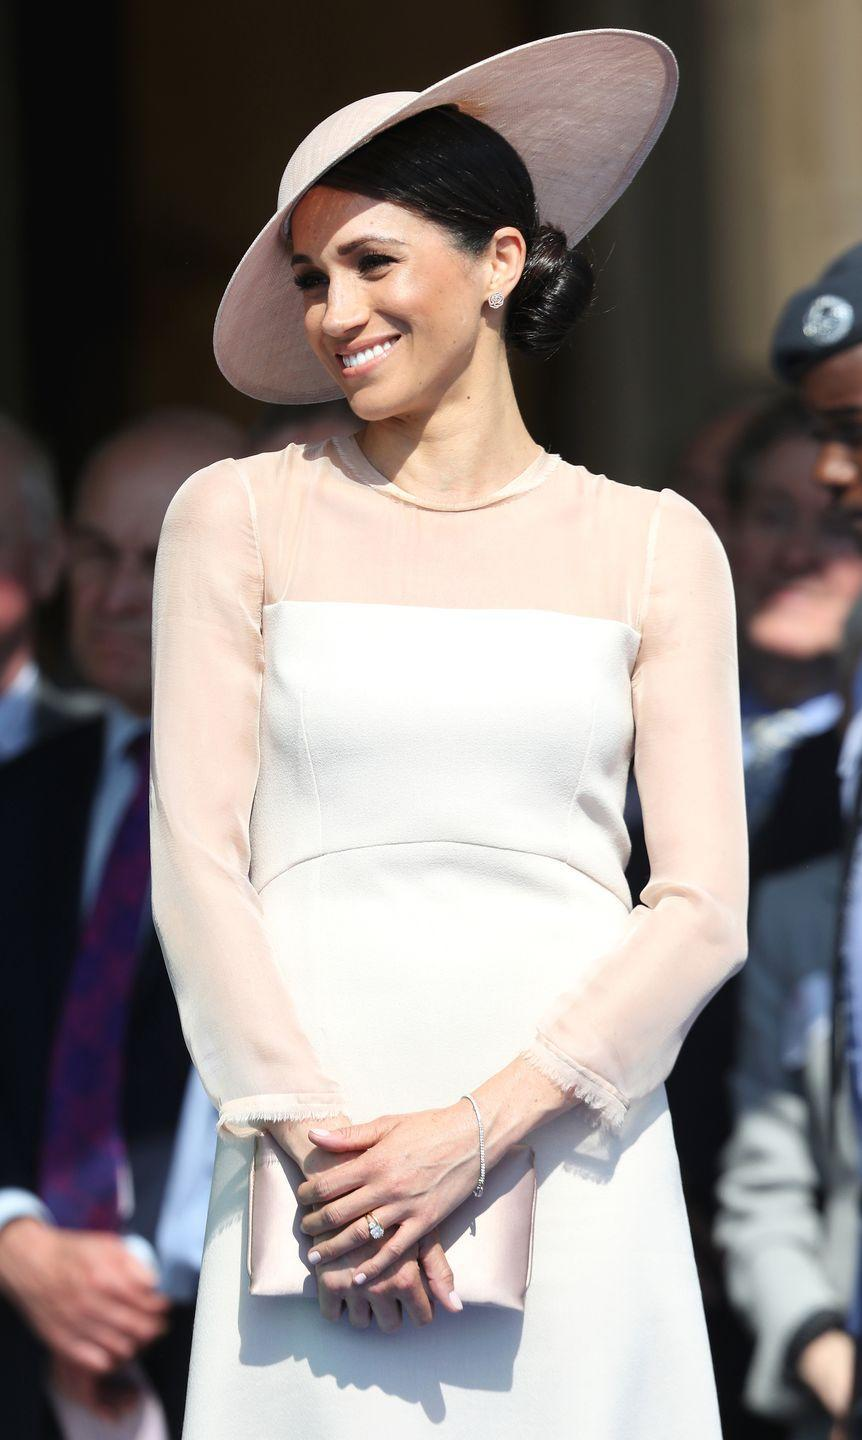 <p>Meghan, Duchess of Sussex, attends the Prince of Wales's 70th Birthday Patronage Celebration held at Buckingham Palace.</p>